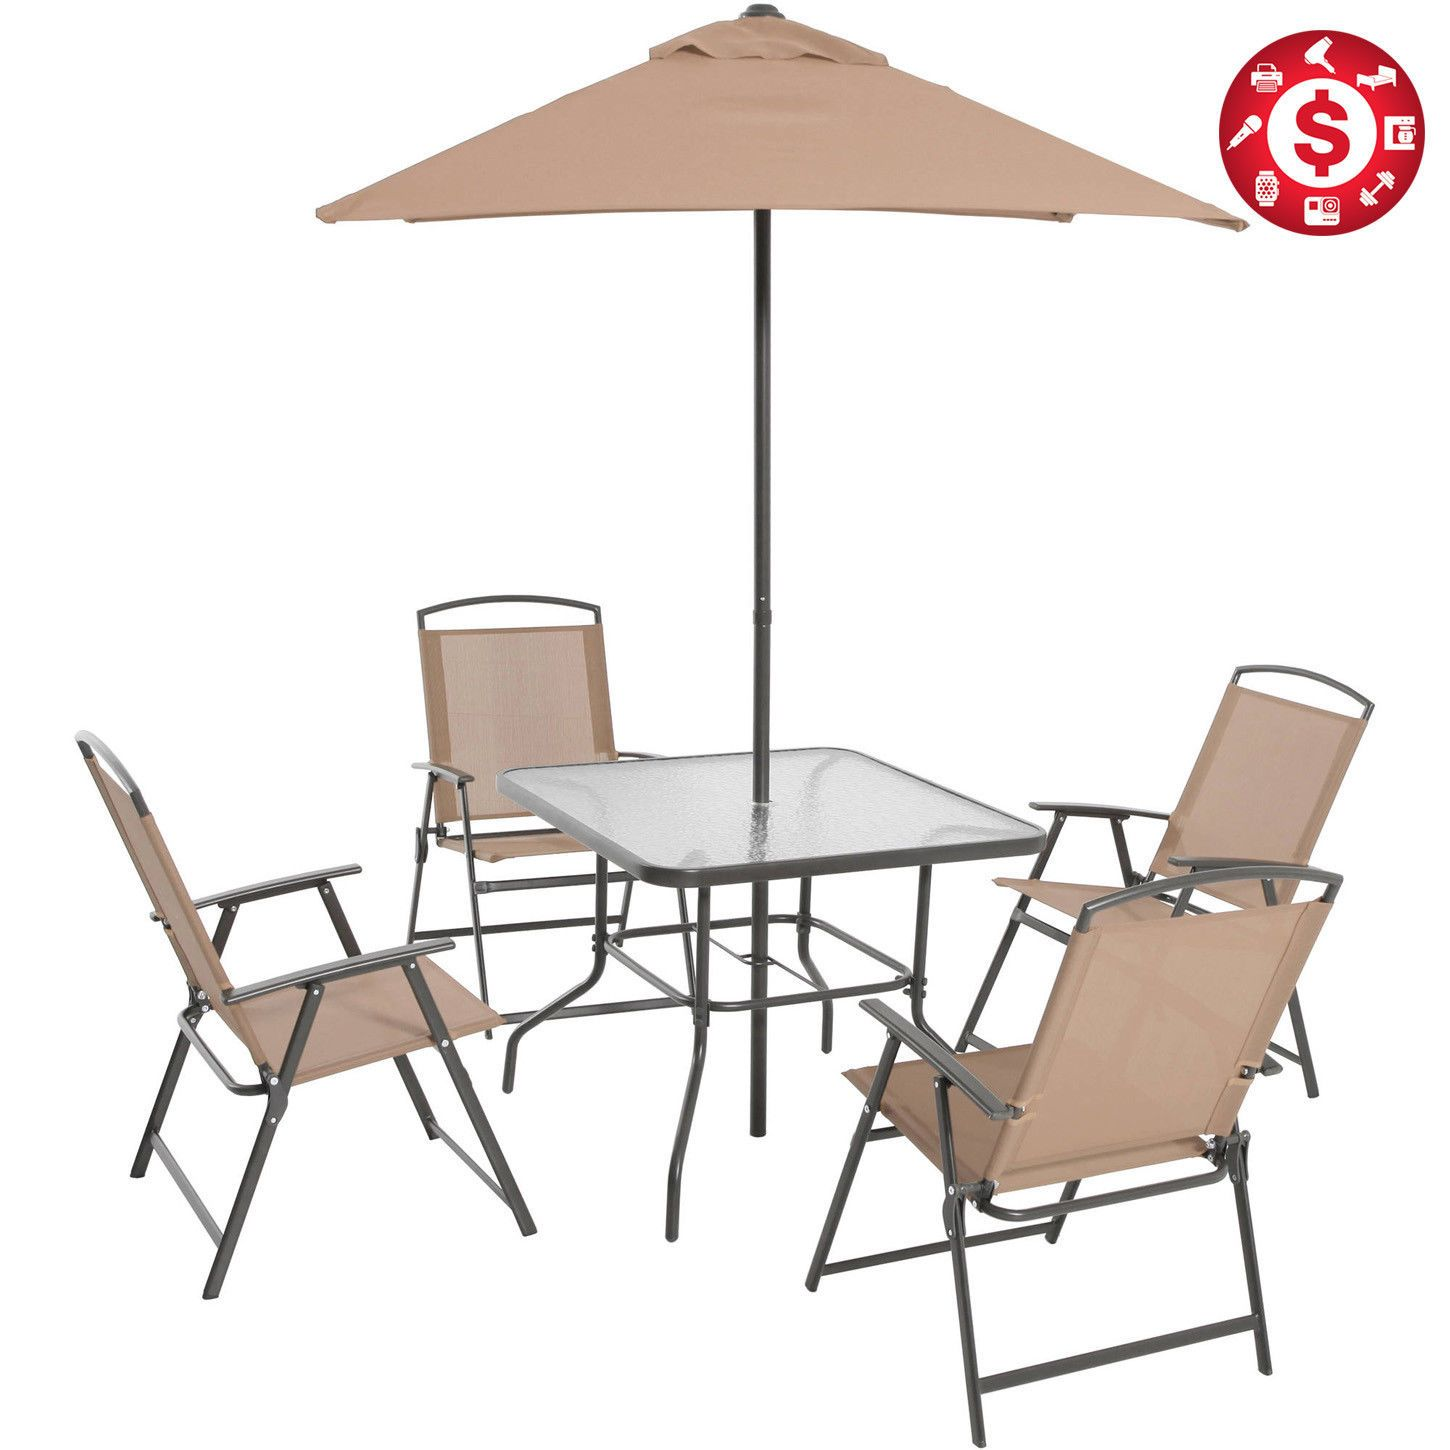 6 piece patio dining set folding table chairs umbrella outdoor rh pinterest com